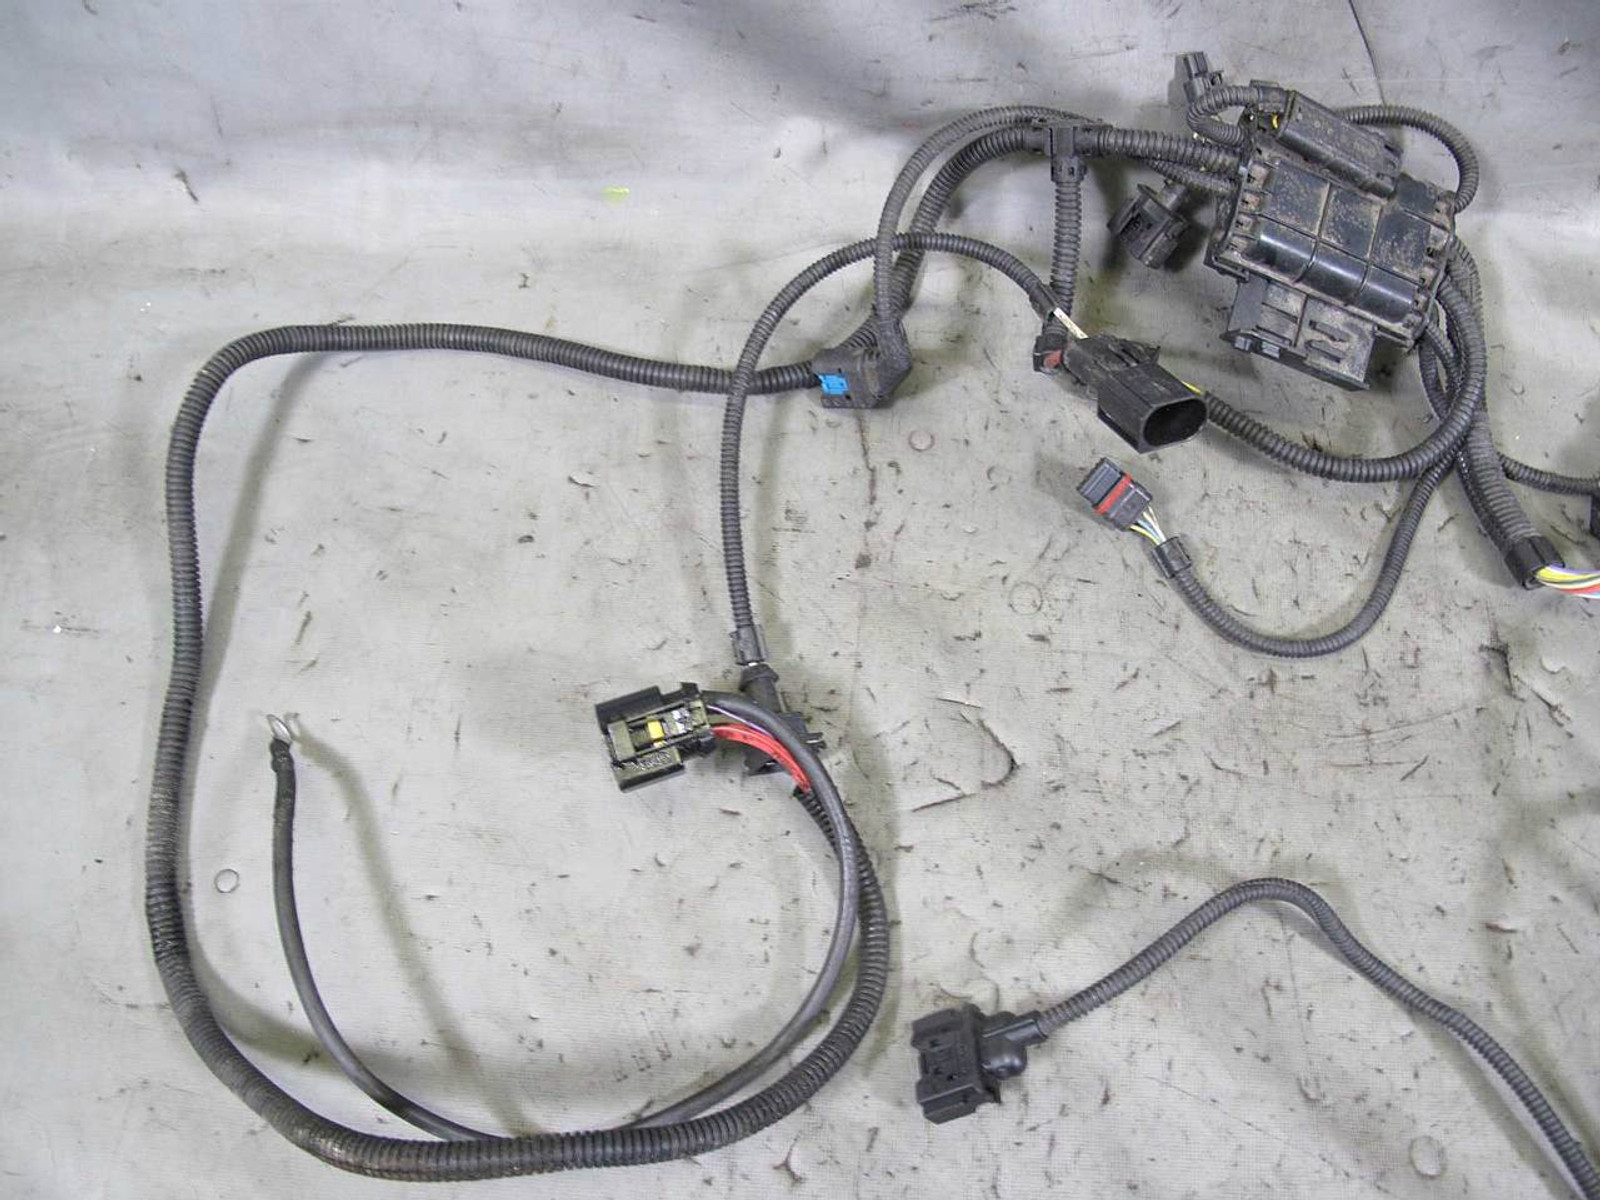 2011 Bmw N55 6 Cylinder Turbo Engine Wiring Harness Sensoric Module Wire